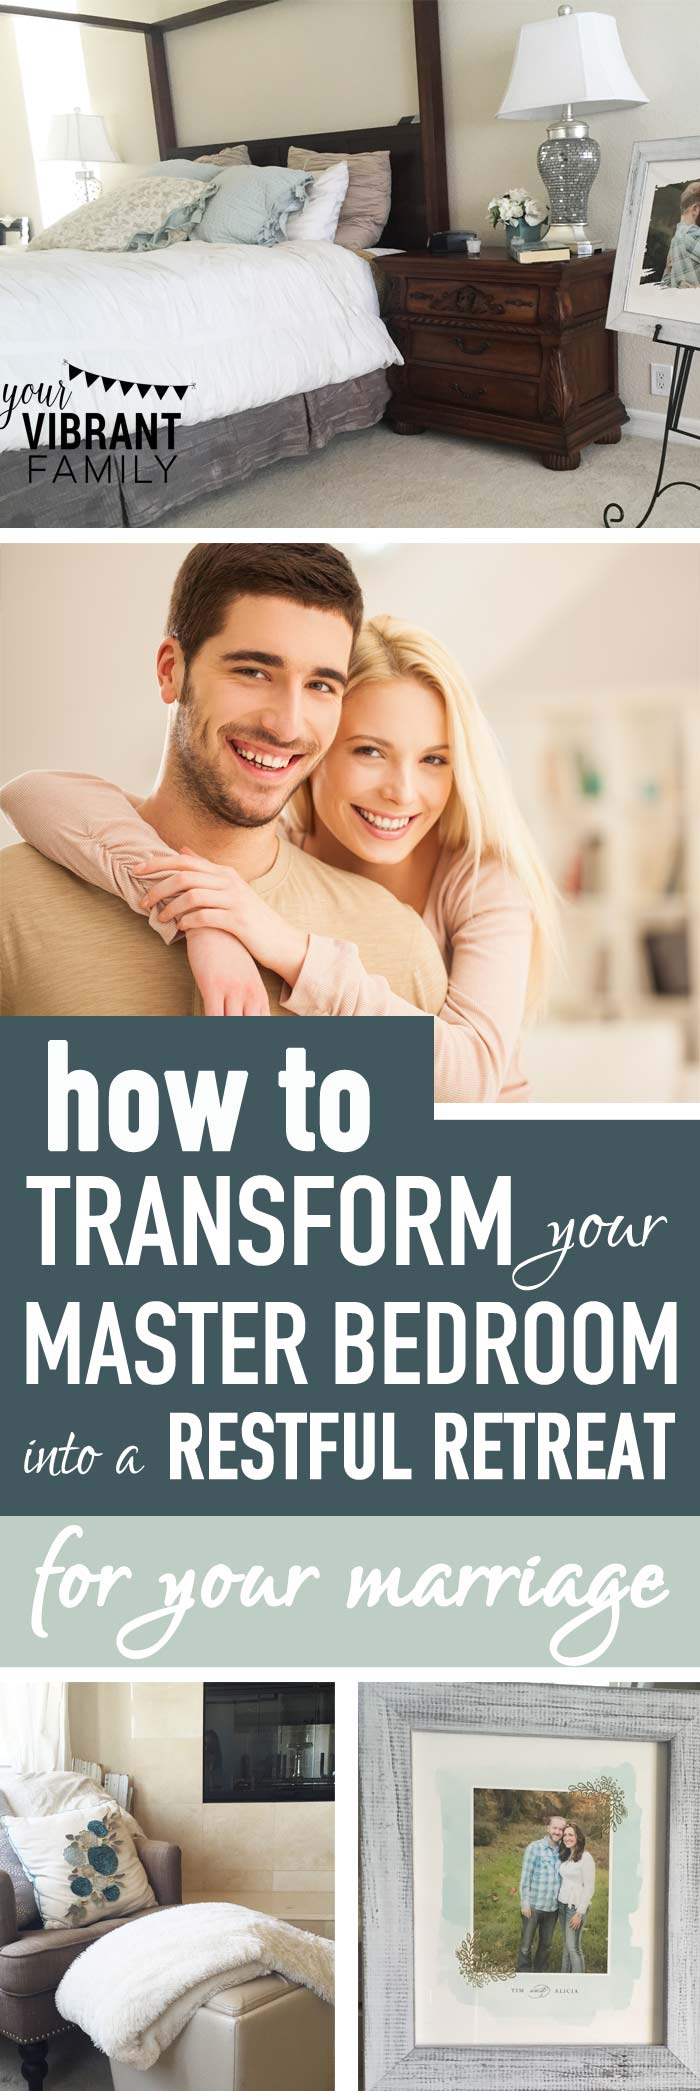 "Do you have a sanctuary in your home for you and your husband? A place to talk about the tough issues? Somewhere where you can close the door and be real with each other? Creating a restful master bedroom retreat isn't about spending thousands of dollars on creating a designer's showcase. Instead, it's about asking, ""what kind of atmosphere do you want to encourage in your marriage?"" Every single couple needs a place like this. Here's how to create a restful master bedroom retreat for your marriage!"